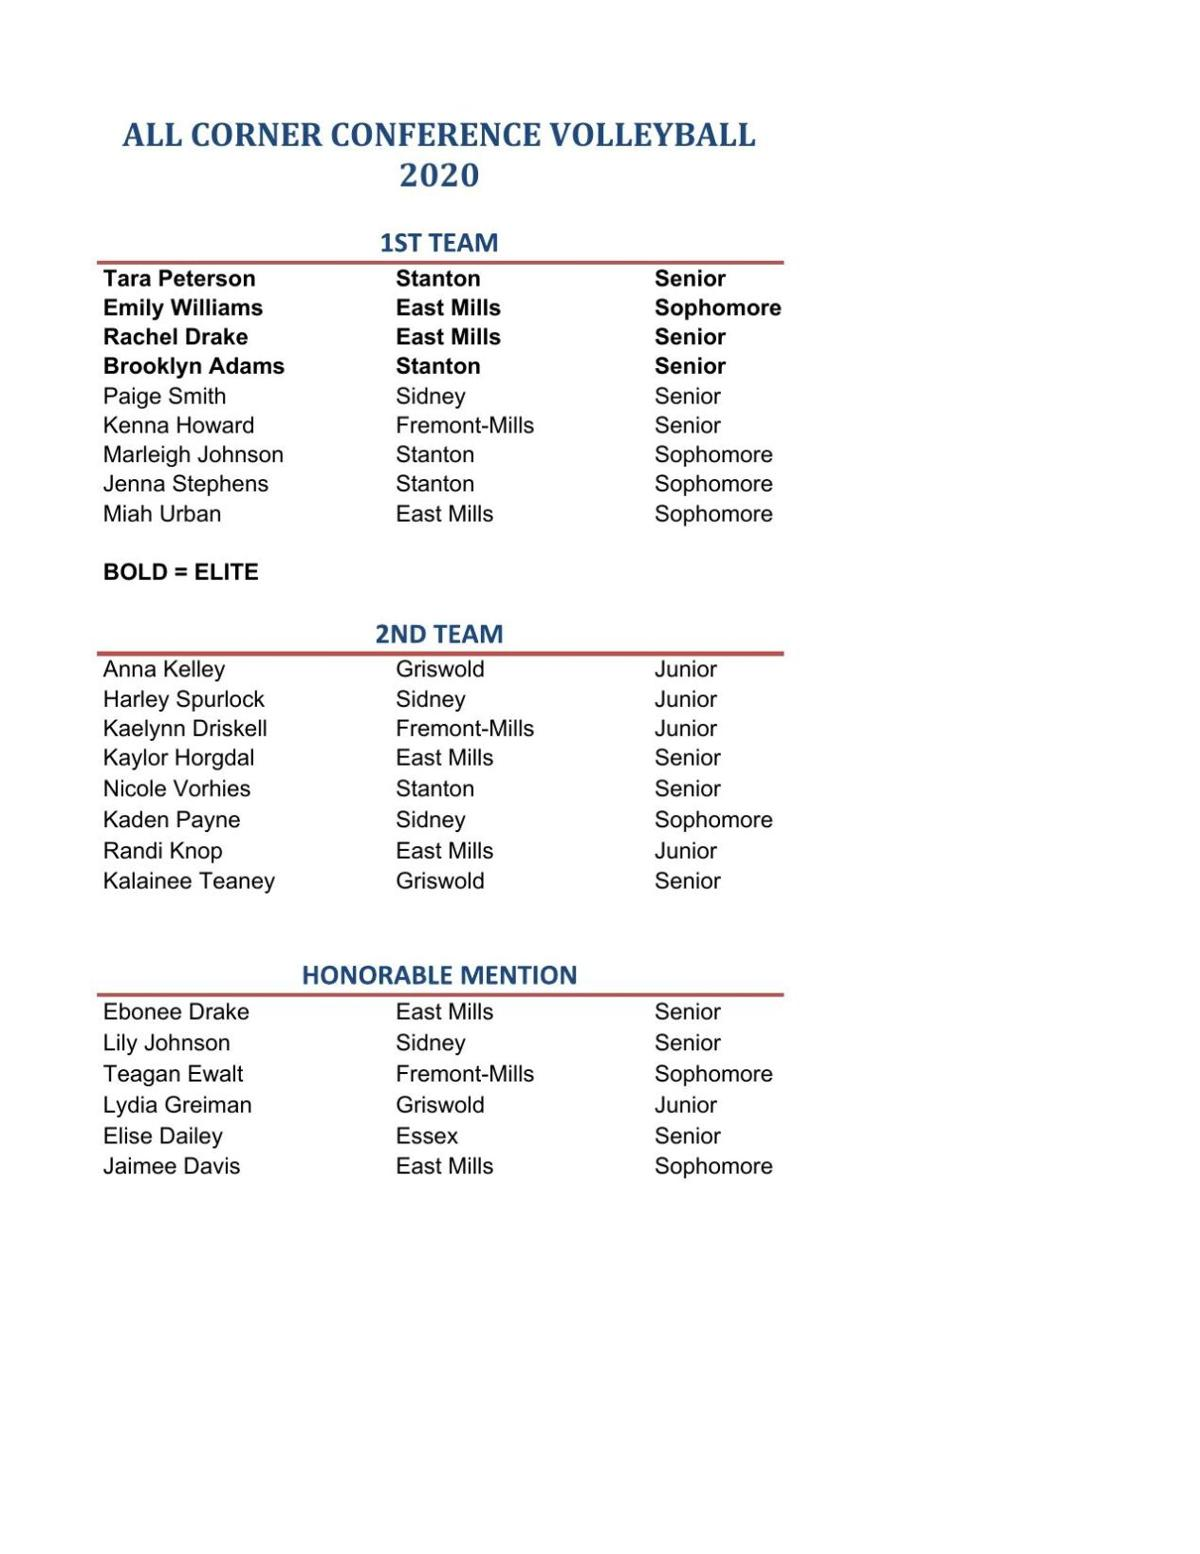 All-Corner Conference volleyball